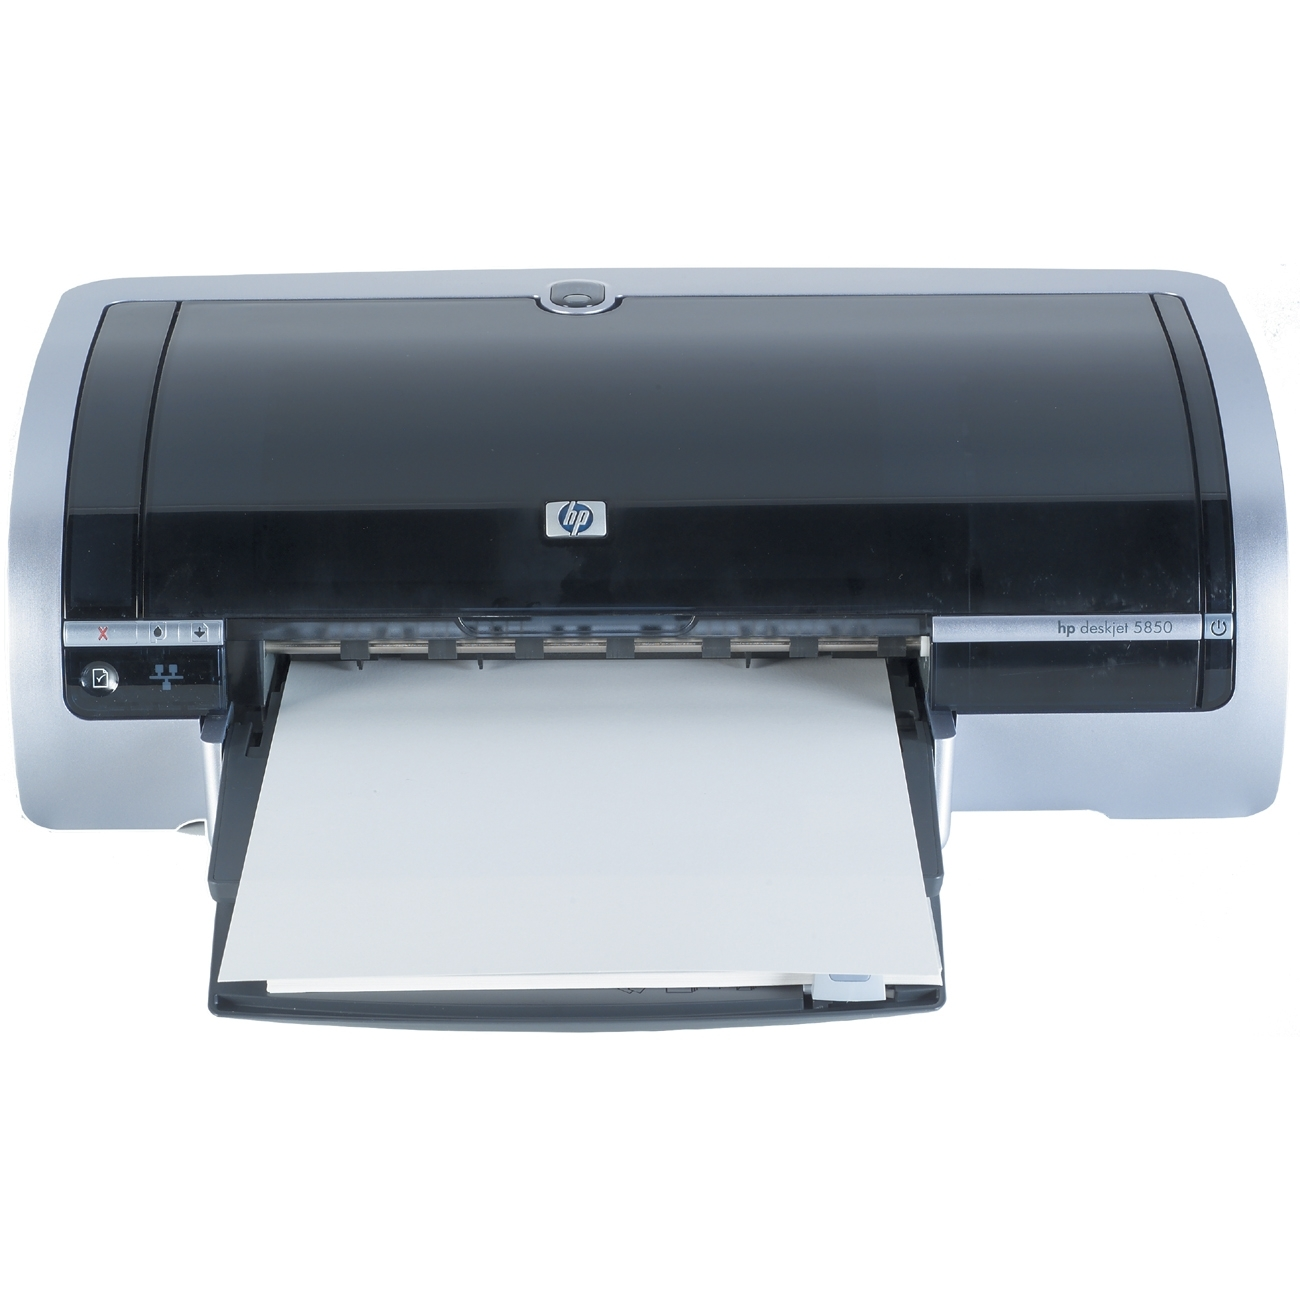 Hp deskjet 5850 user manual pdf download.